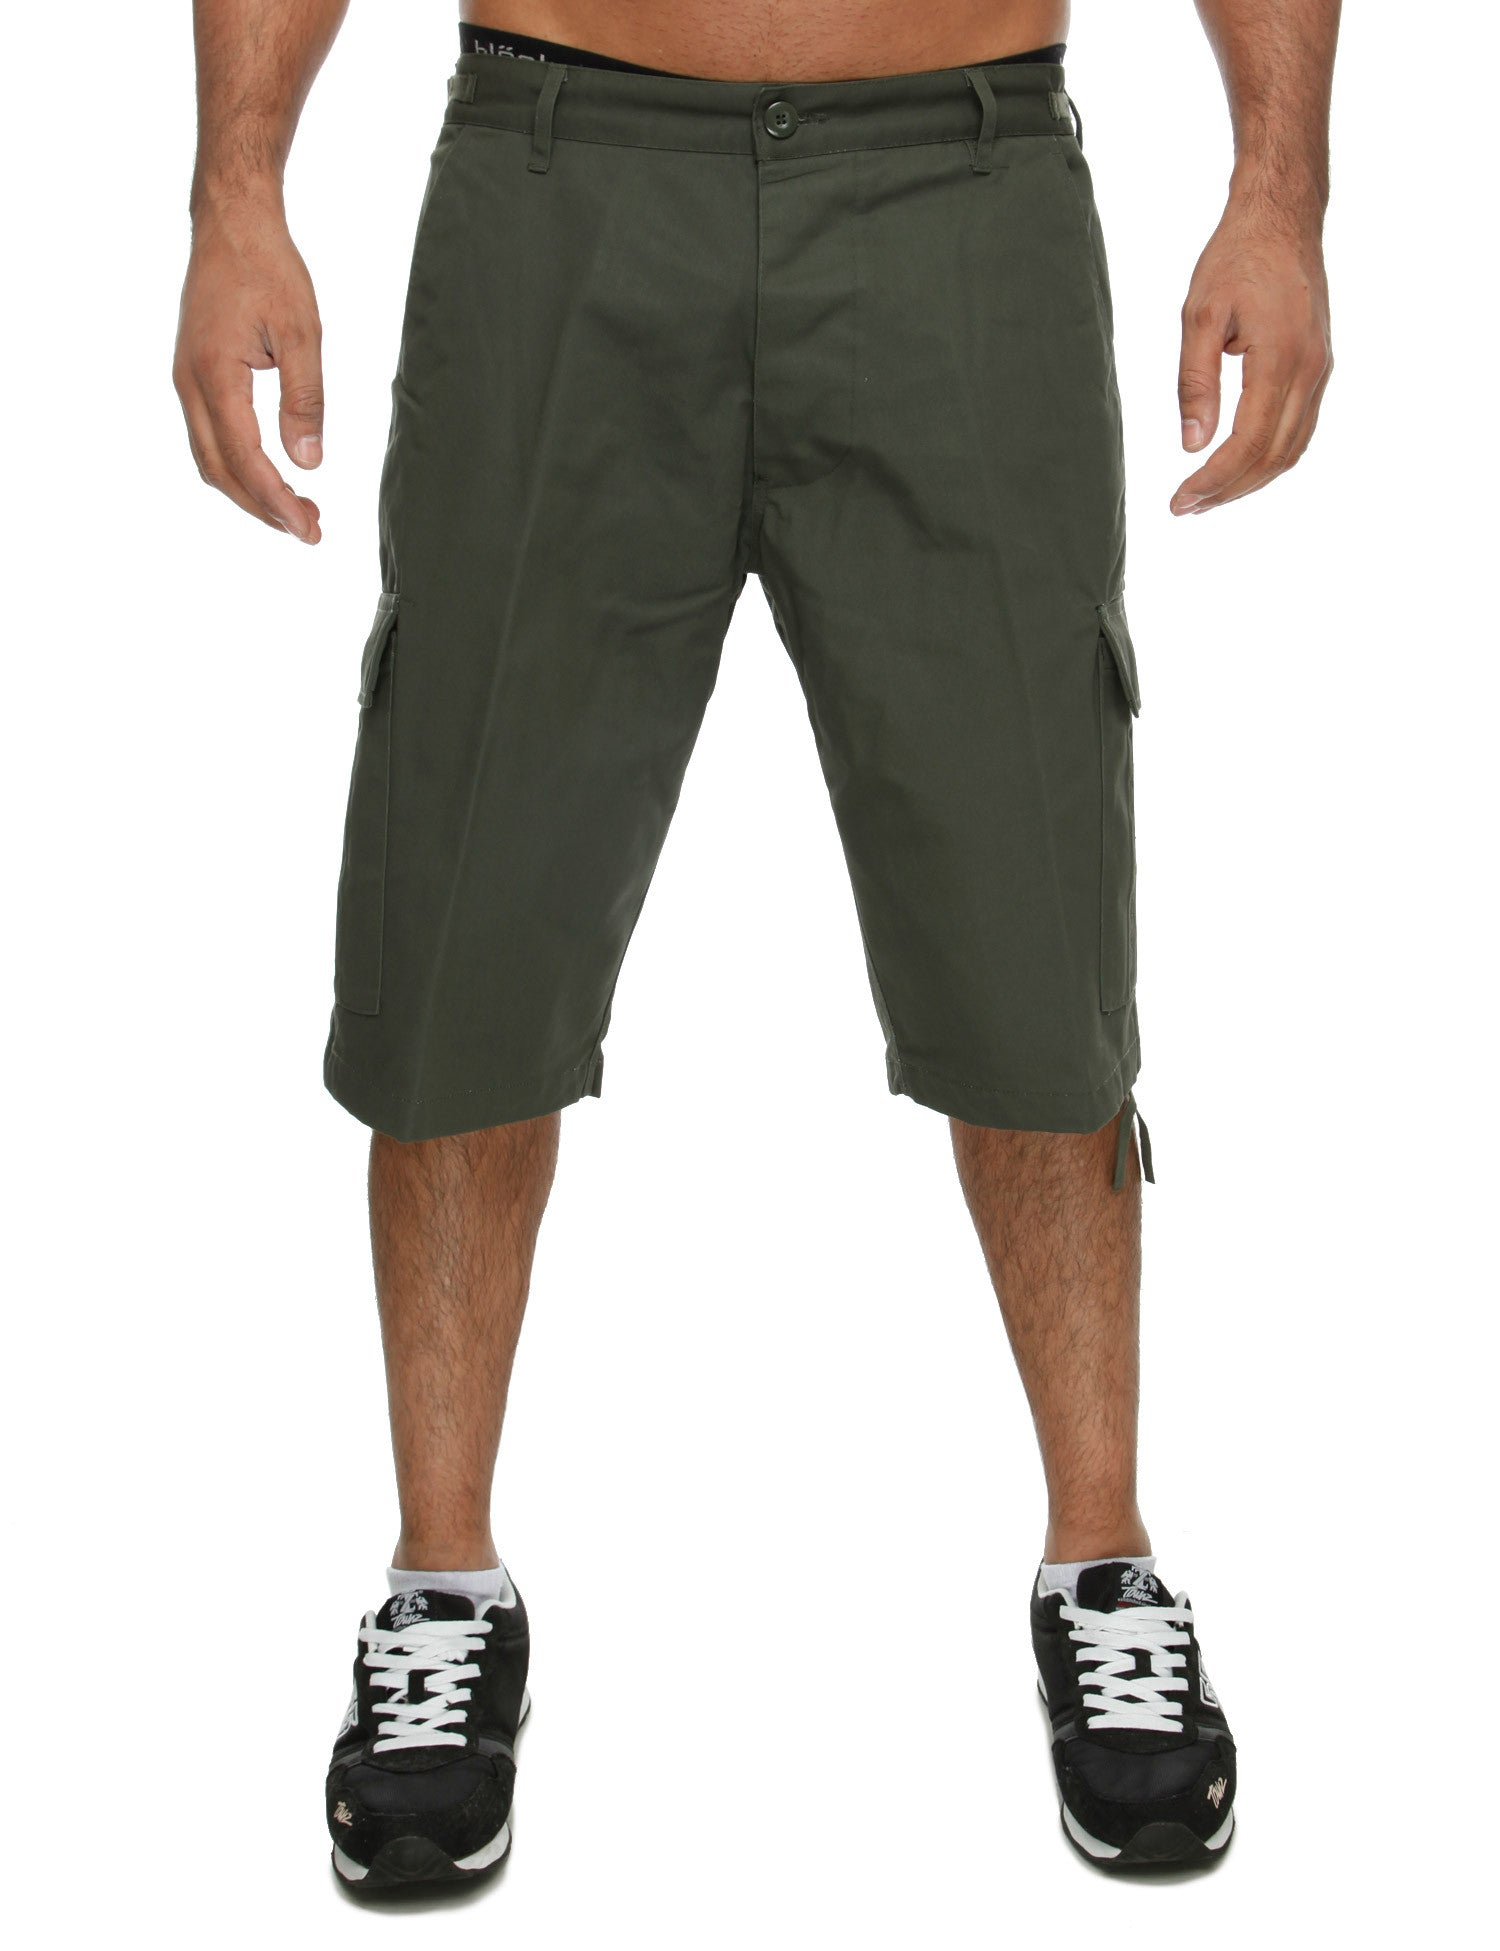 Royal Blue Cargo Shorts 9023 Olive Green